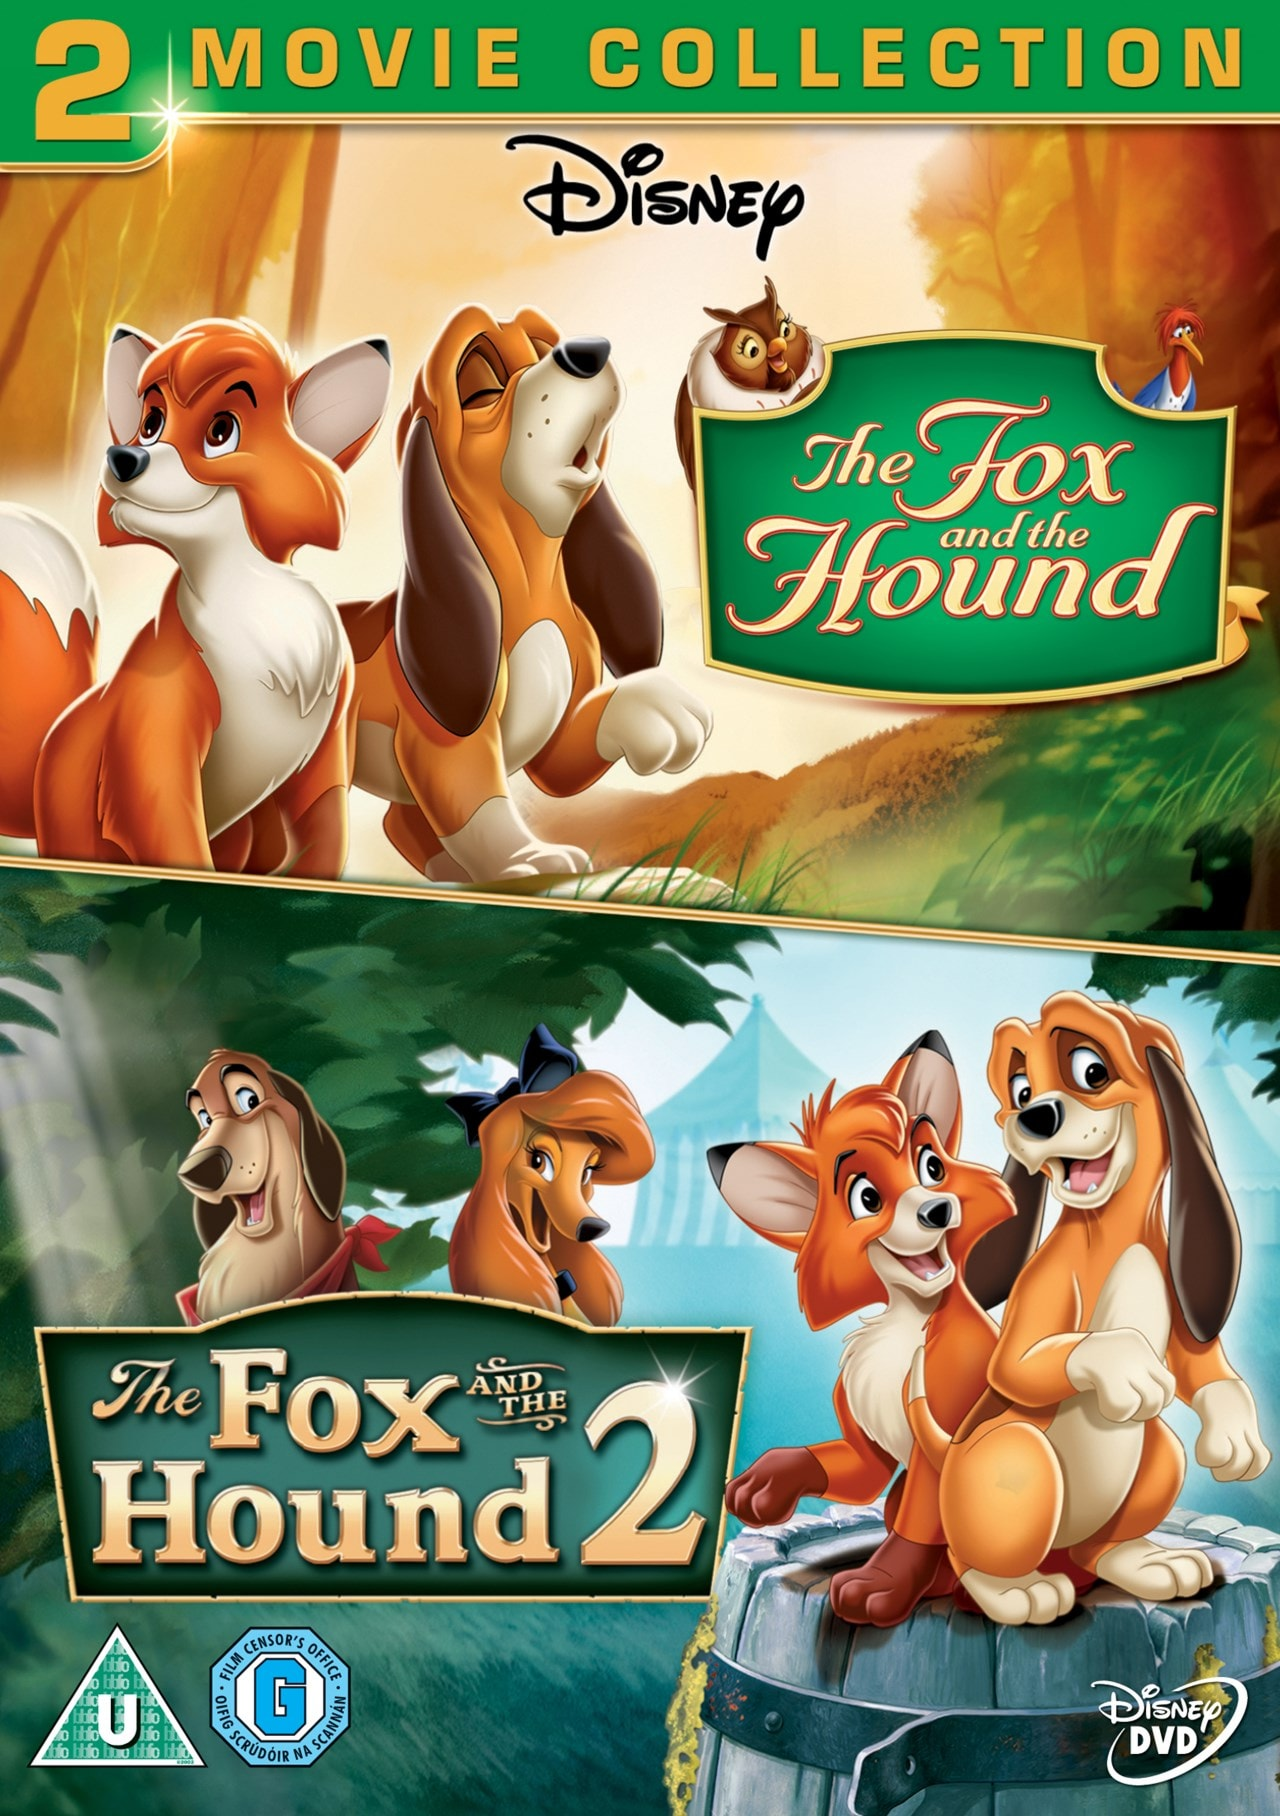 The Fox and the Hound/The Fox and the Hound 2 - 1